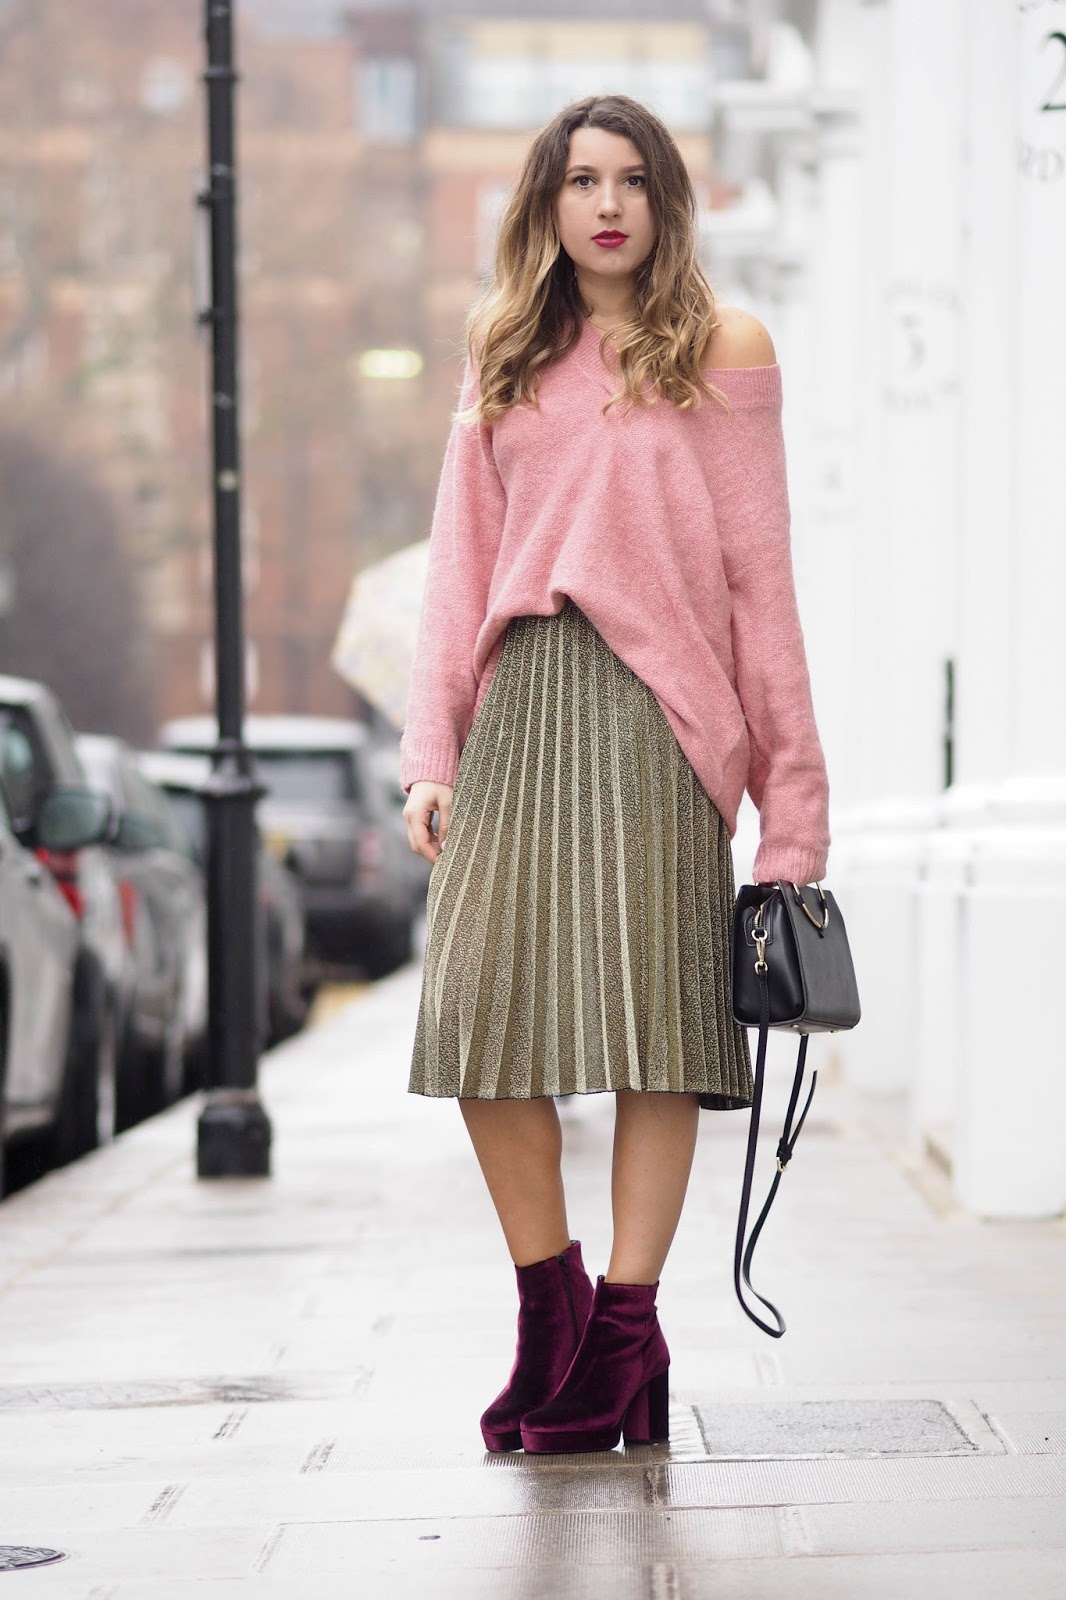 53fa2dac0d96 Oversized Jumpers And Pleated Midi Skirts | What's In Her Wardrobe ...